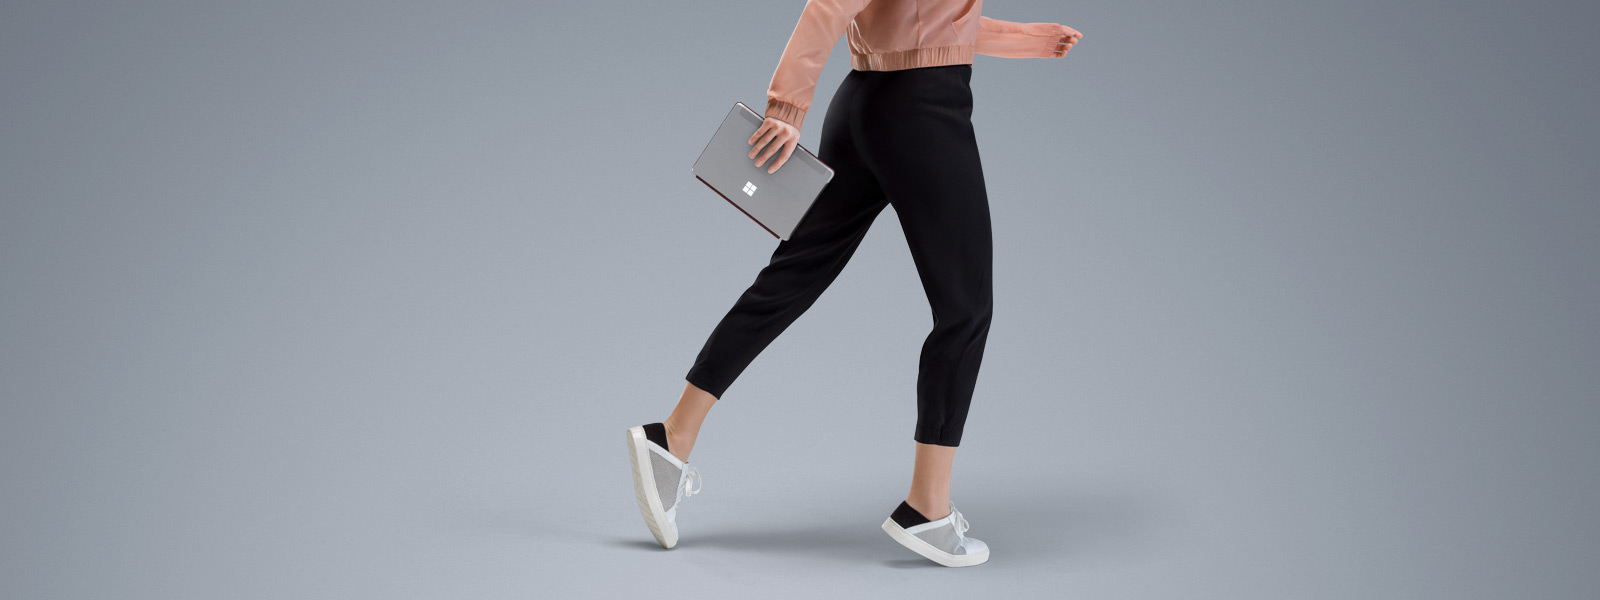 Surface Go held by a girl walking